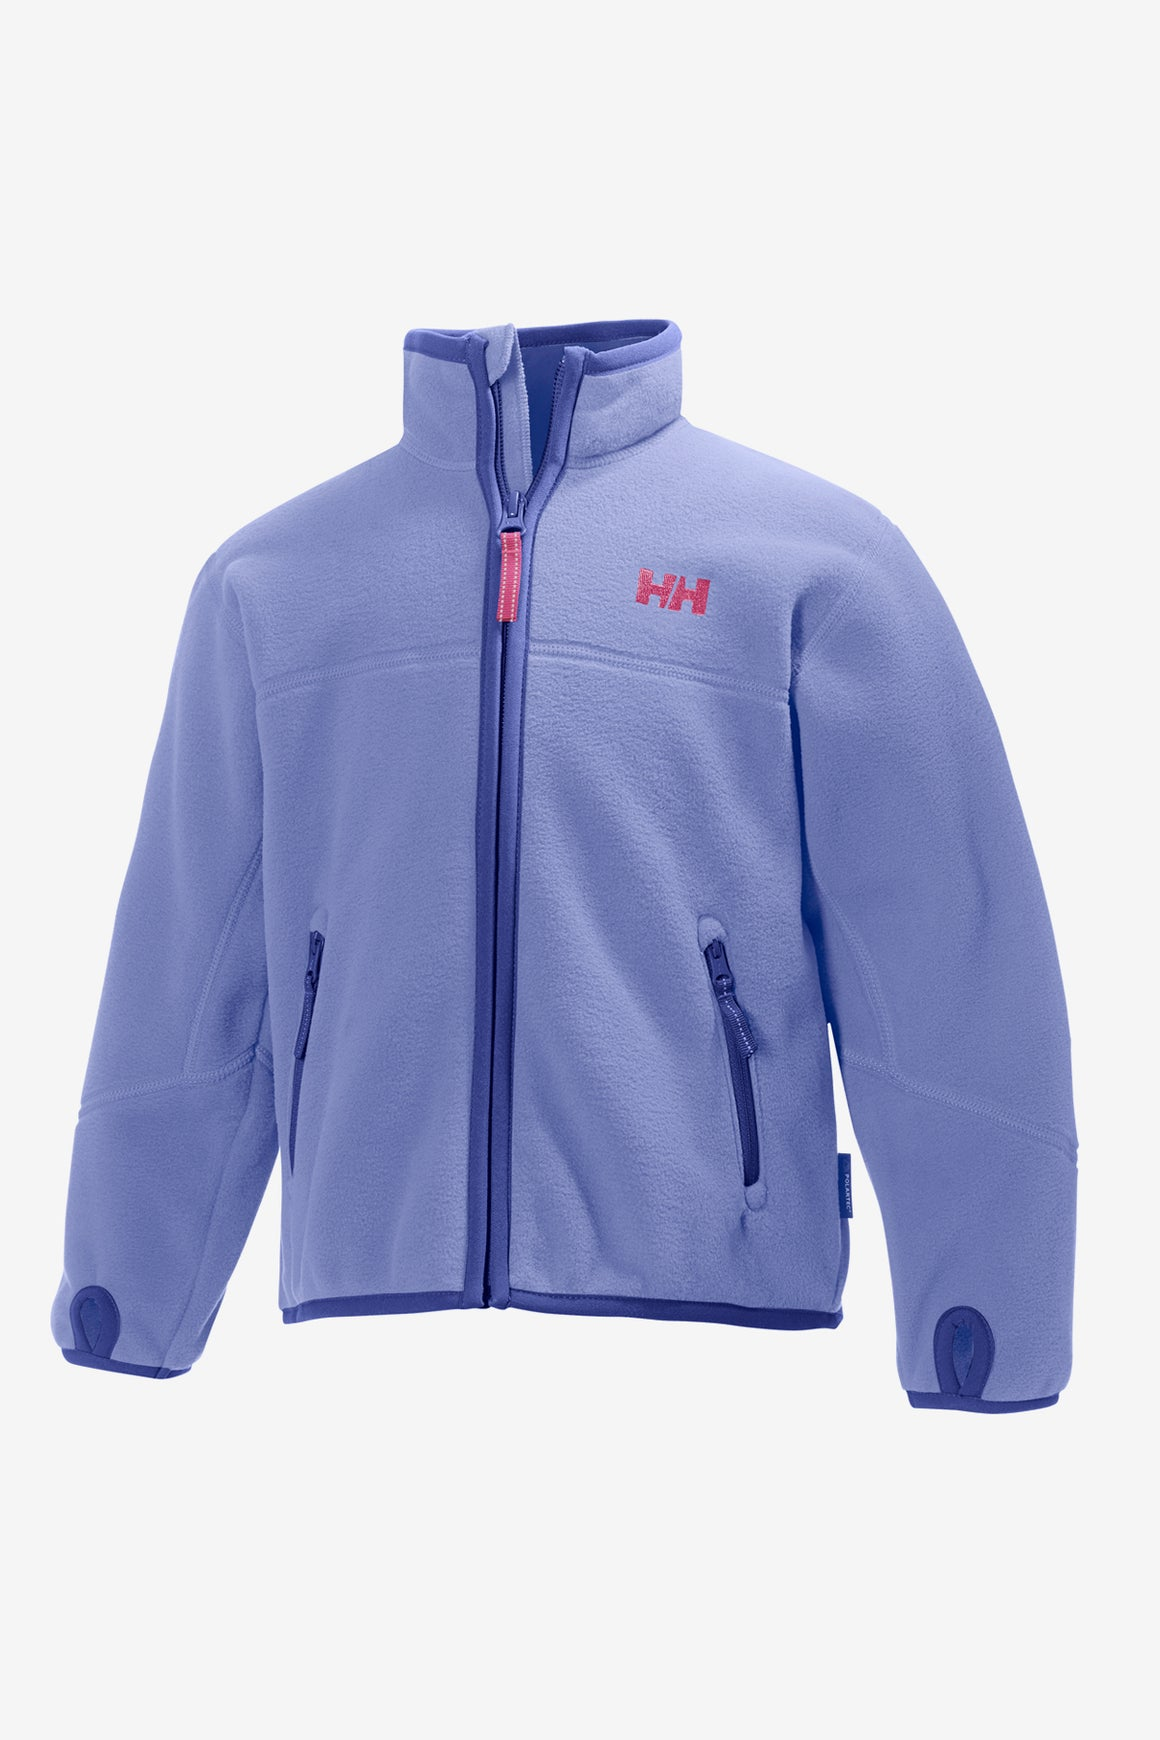 Helly Hansen Fleece Jacket - Lilac